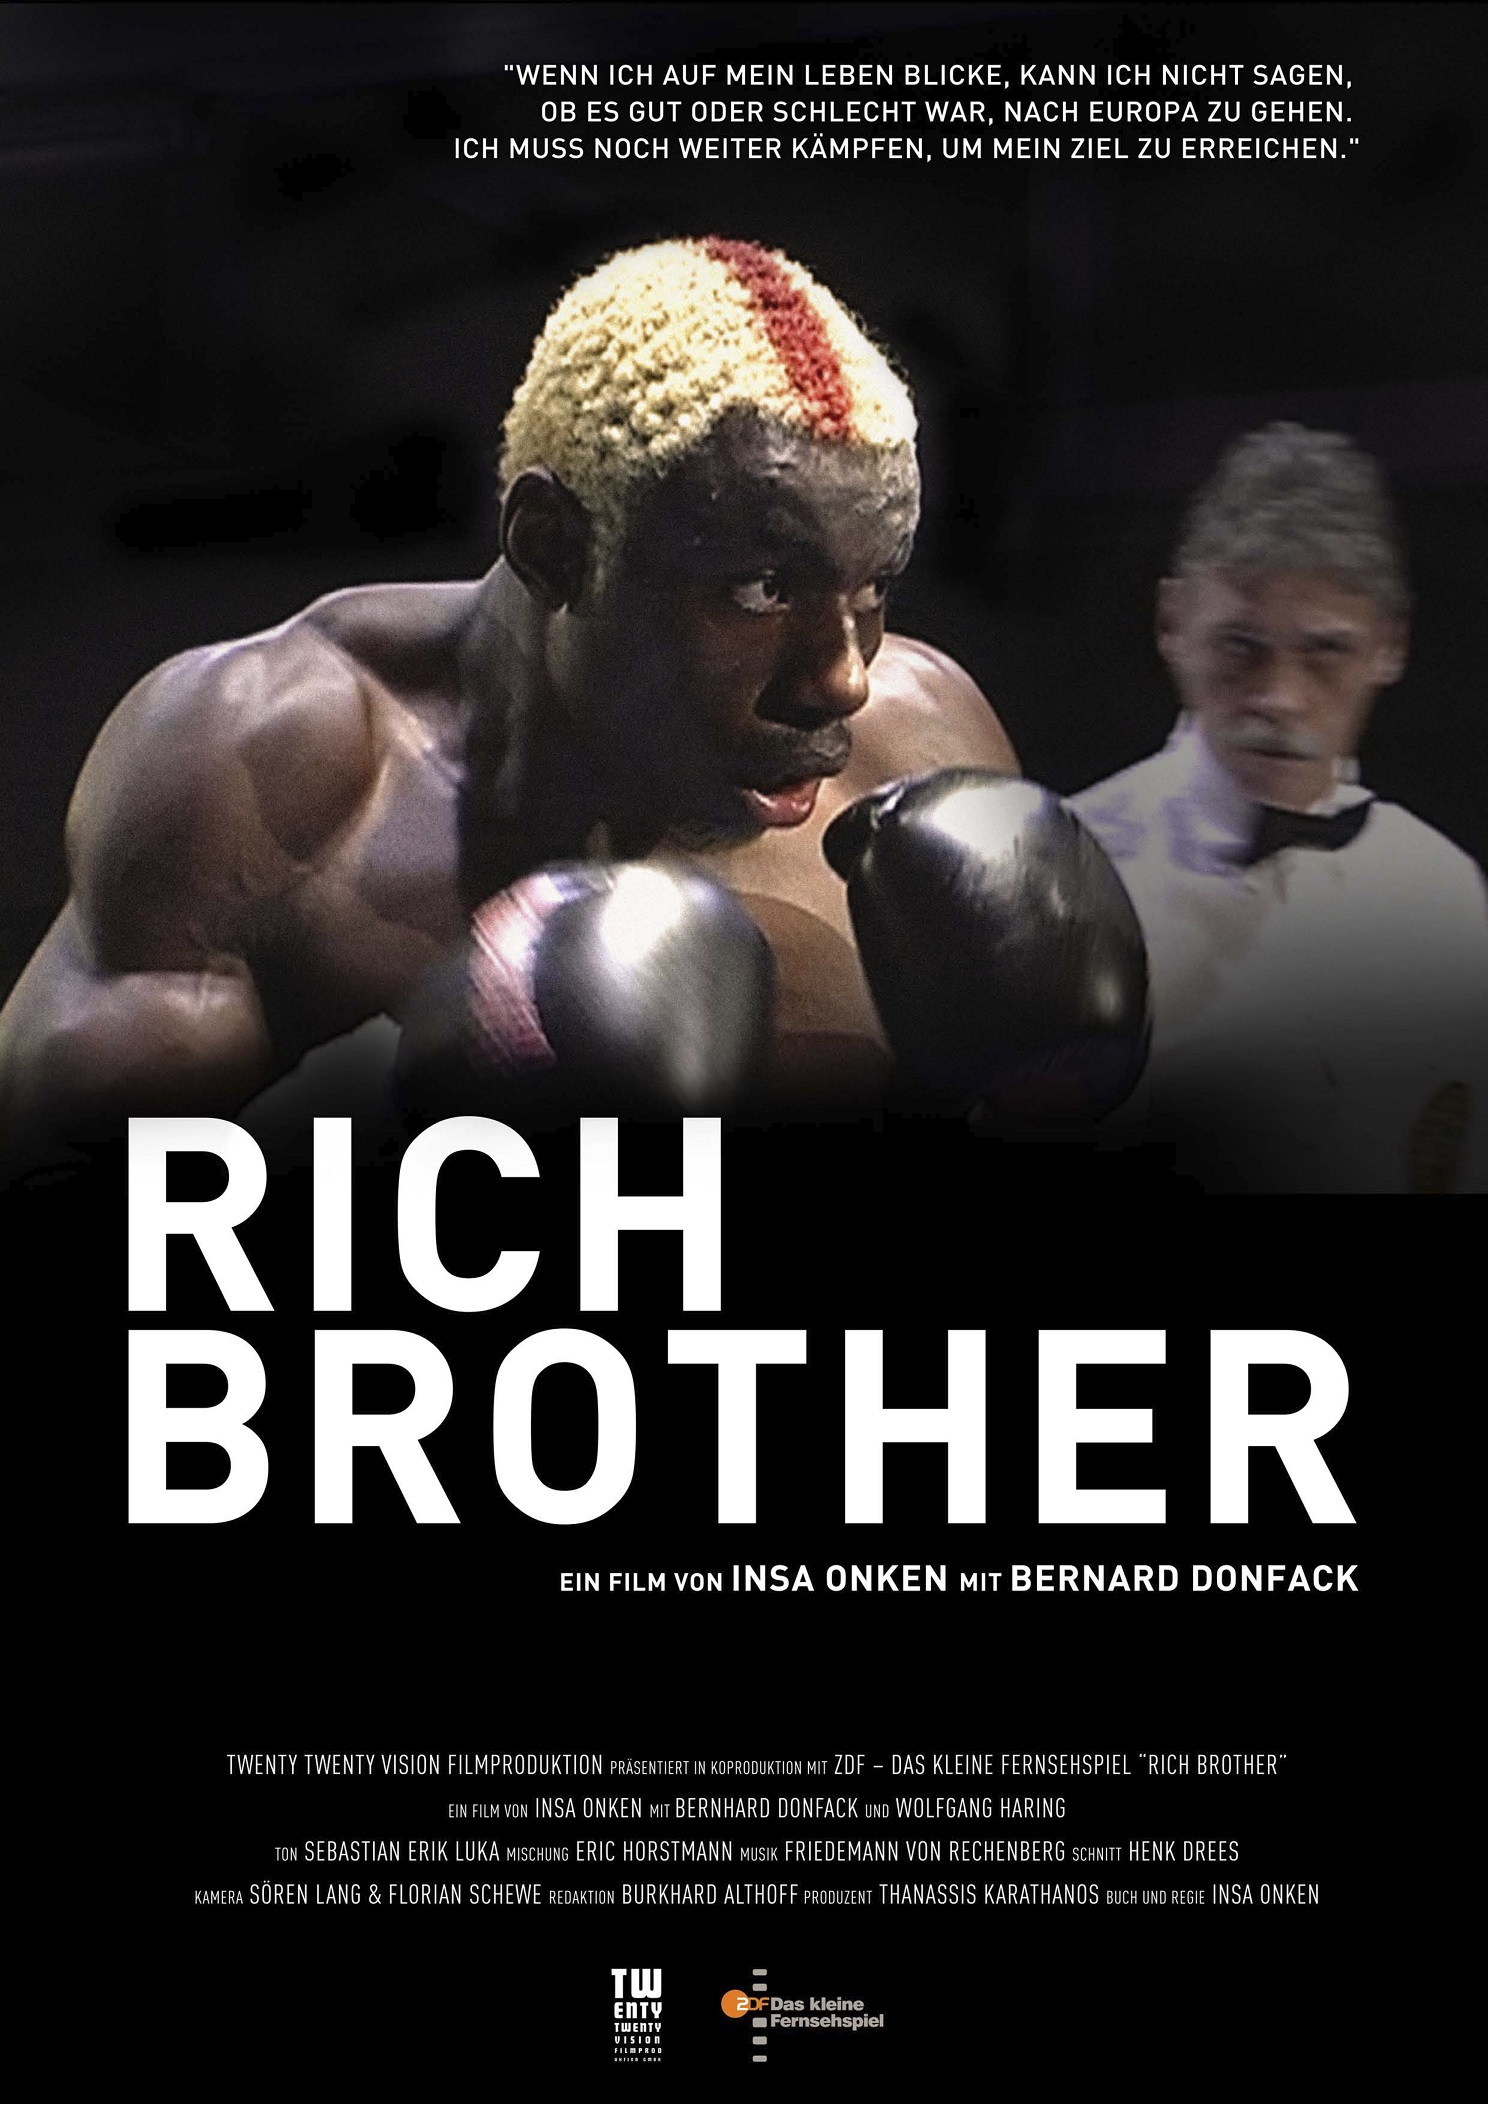 RichBrother_2009.jpg